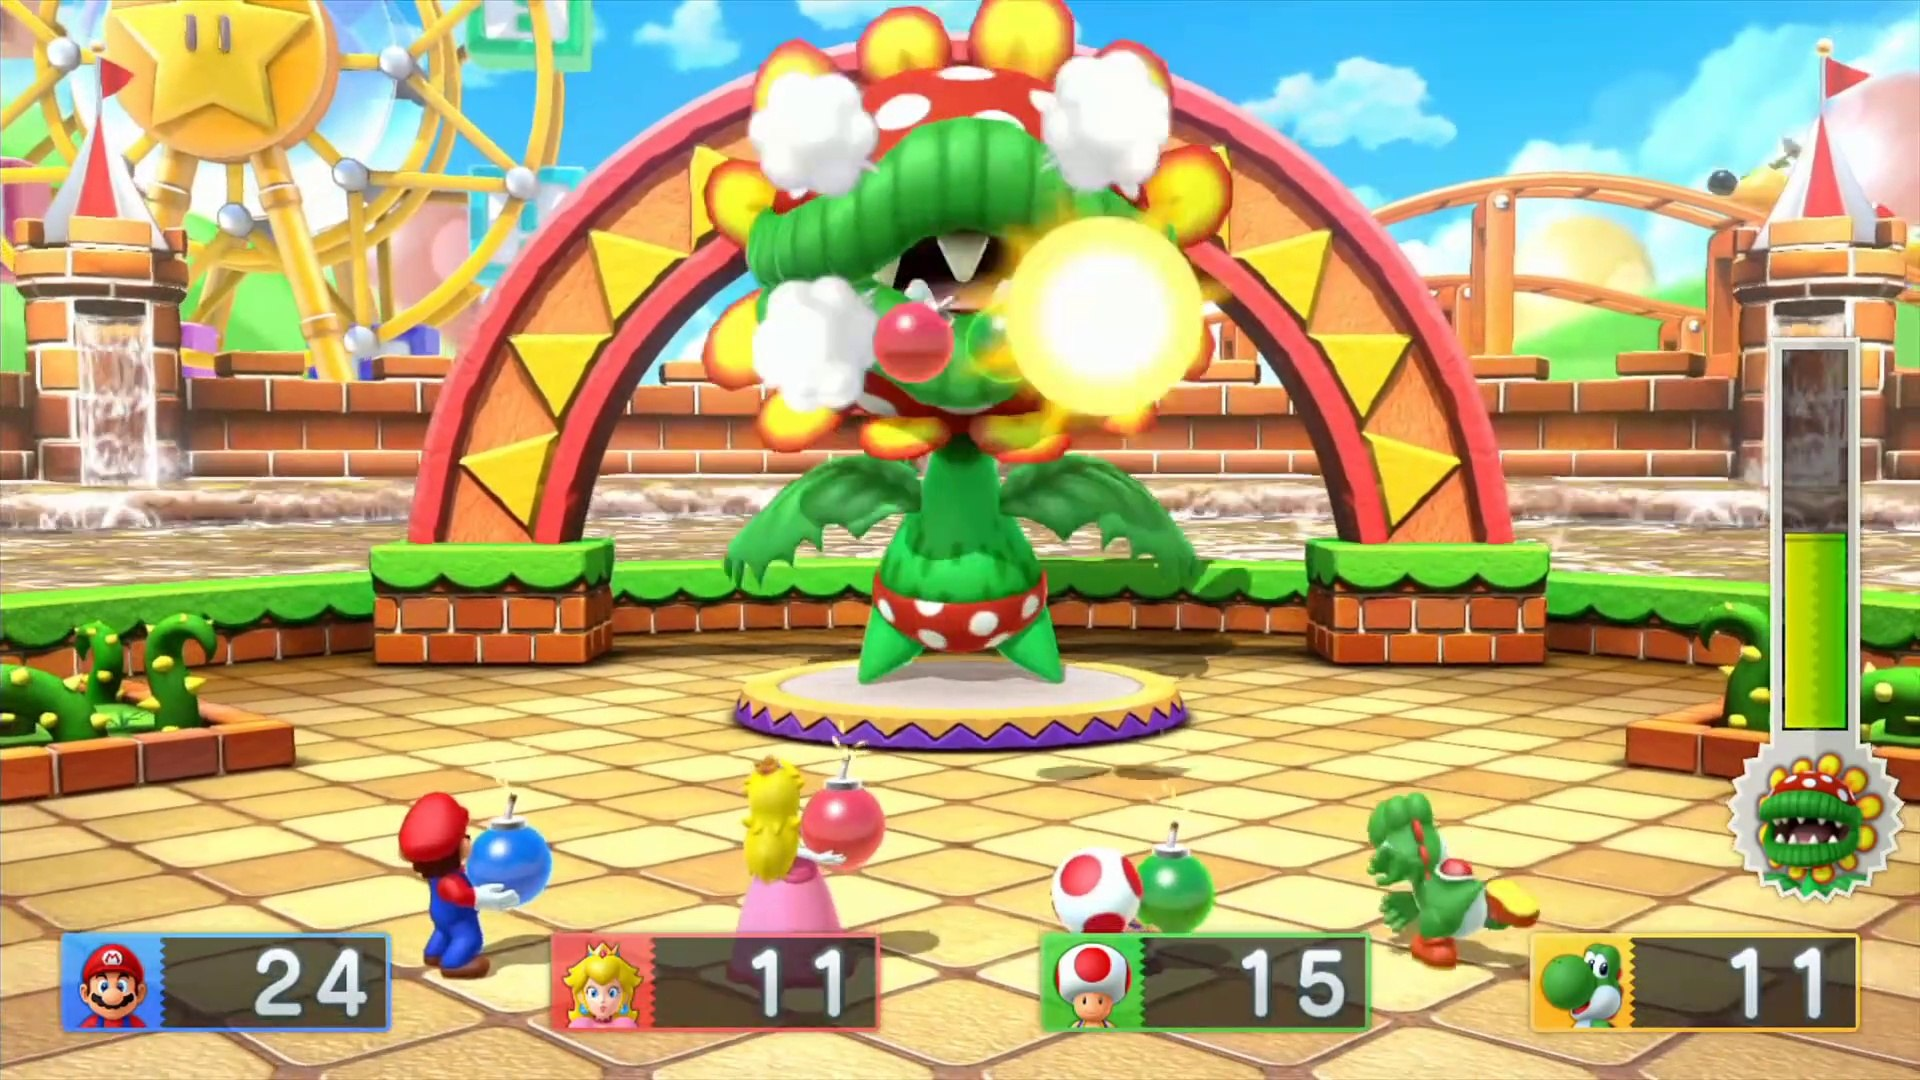 Mario Party 10 - All 10 Boss Battles Gameplay Walkthrough